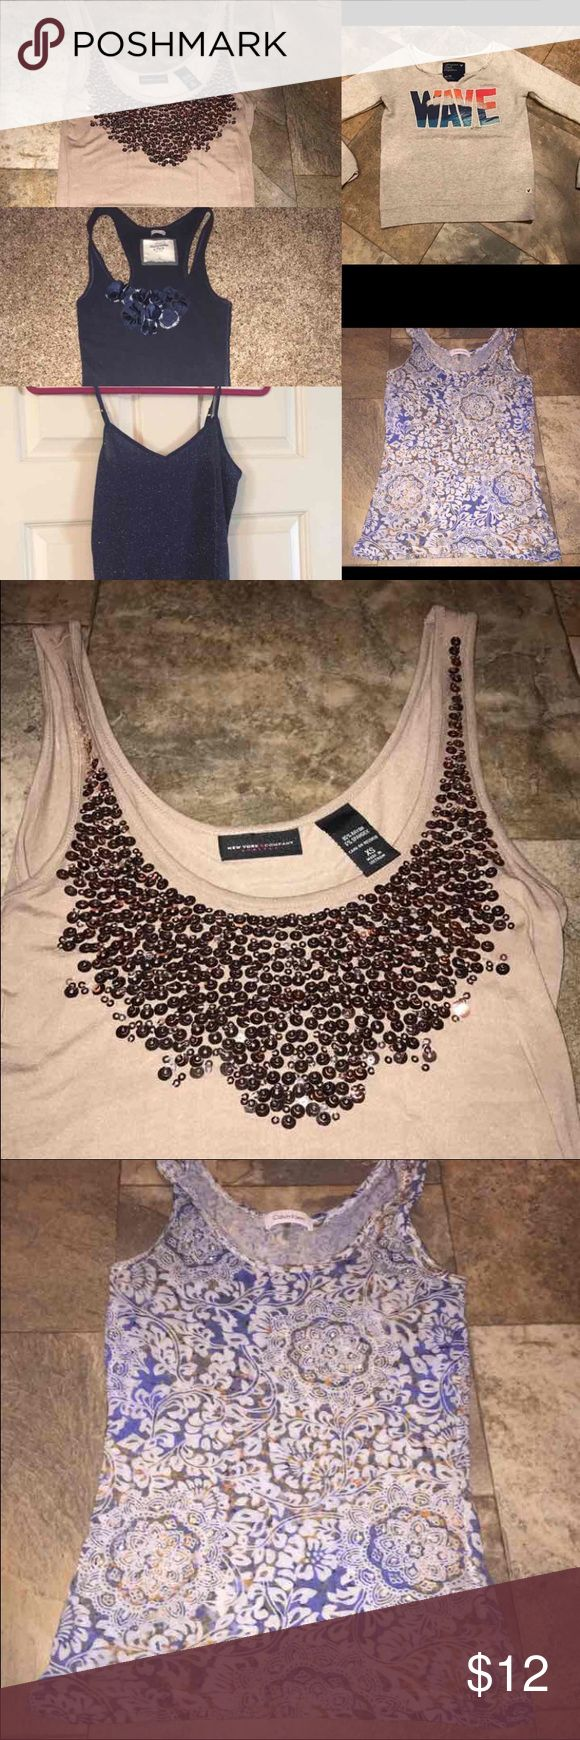 "5 tank tops Abercrombie and fitch Calvin Klein xs 5 tank tops bundle deal all xsmall Express new with tags sparkle navy cami tank top  Calvin Klein embellished floral like design tank top Abercrombie and fitch navy tank top American eagle ""wave"" sweatshirt New York and company sequined tank top   Let's bundle !  10% off on ANY two items purchased AND shipped together.  15% off ANY three items purchased AND shipped together! Tops Tank Tops"